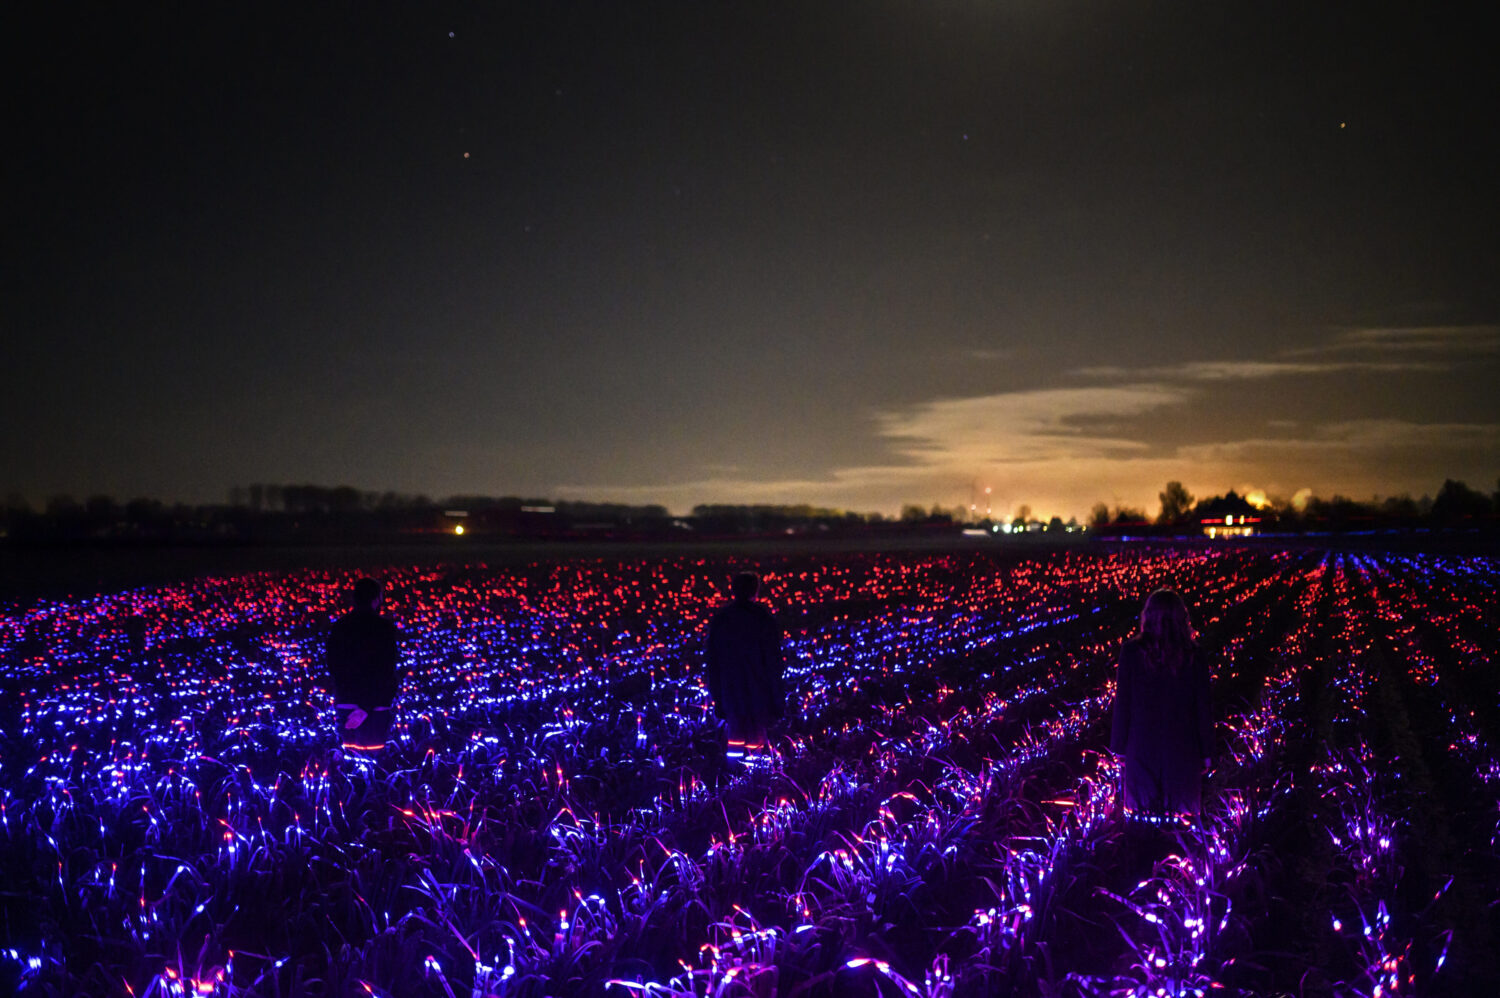 Field of plants illuminated in red, blue, and purple lights with two people in silouette and brighter lights in the distance